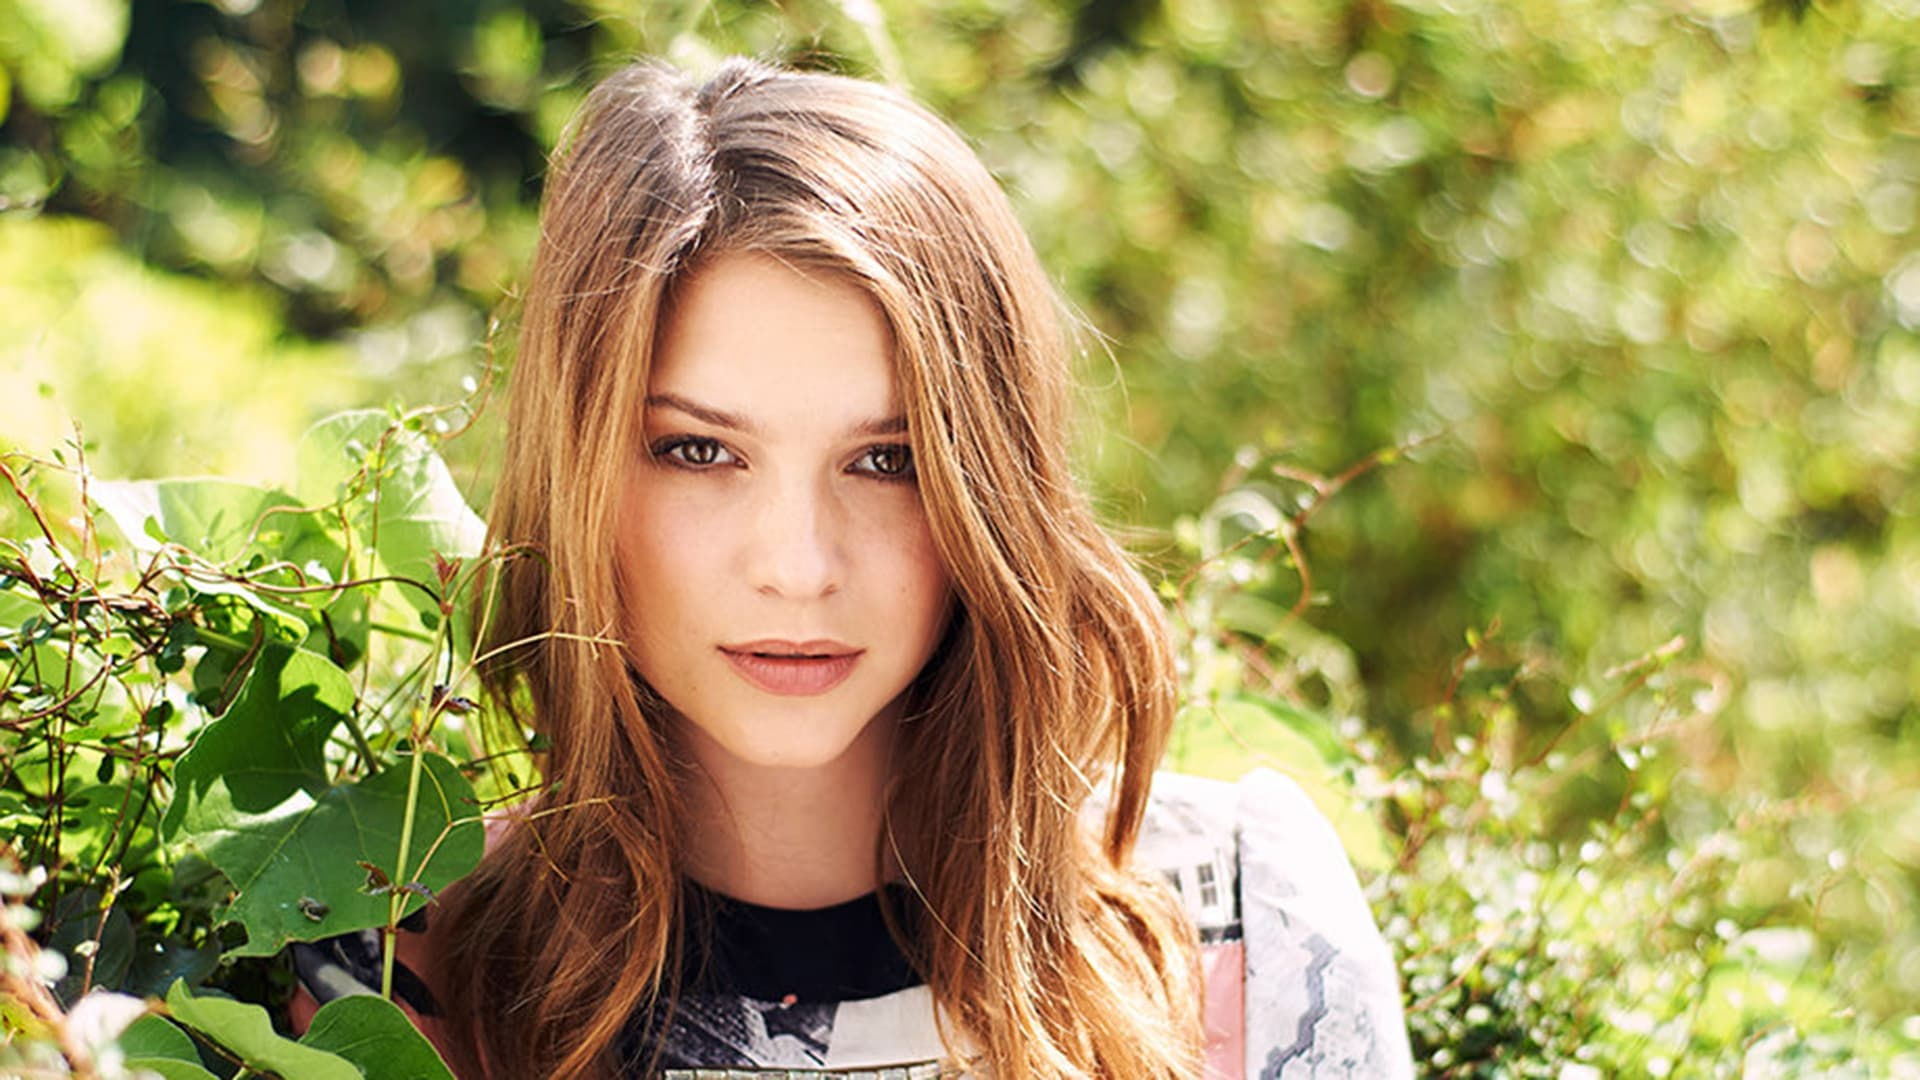 Sophie Cookson: Sophie Cookson Wallpapers HD HIgh Quality Download